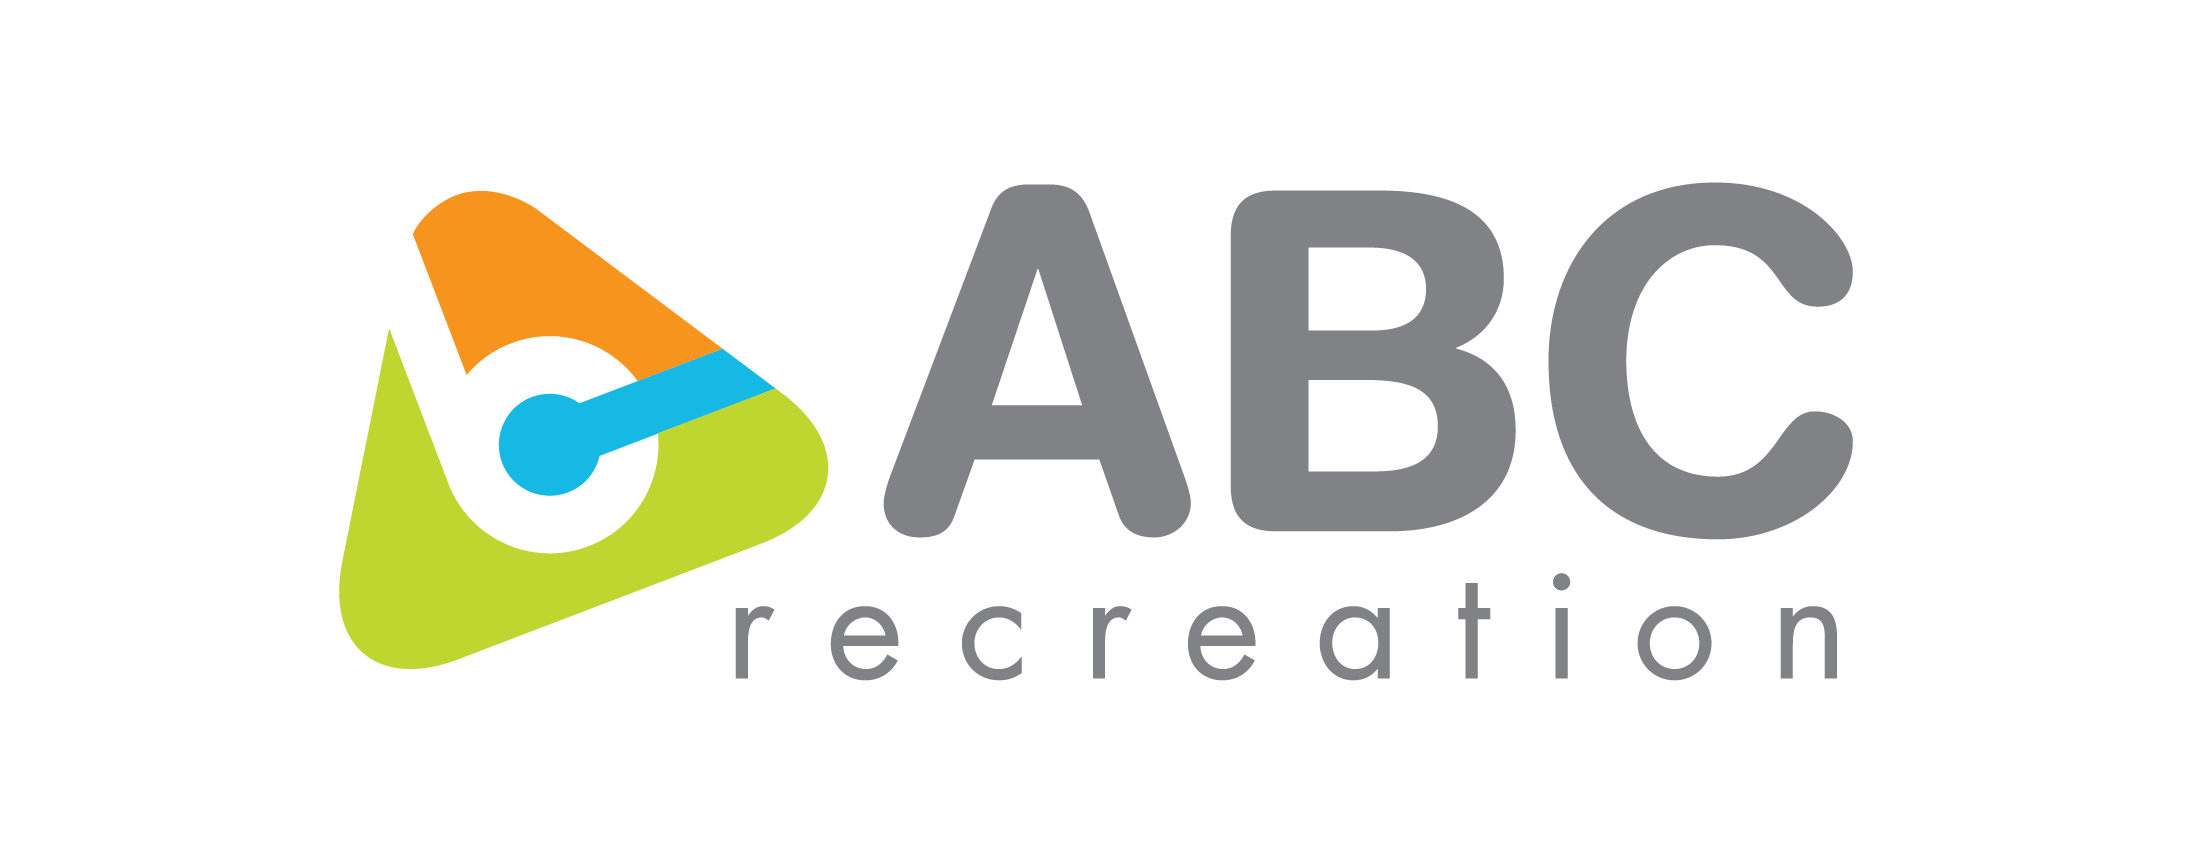 ABC recreation logo